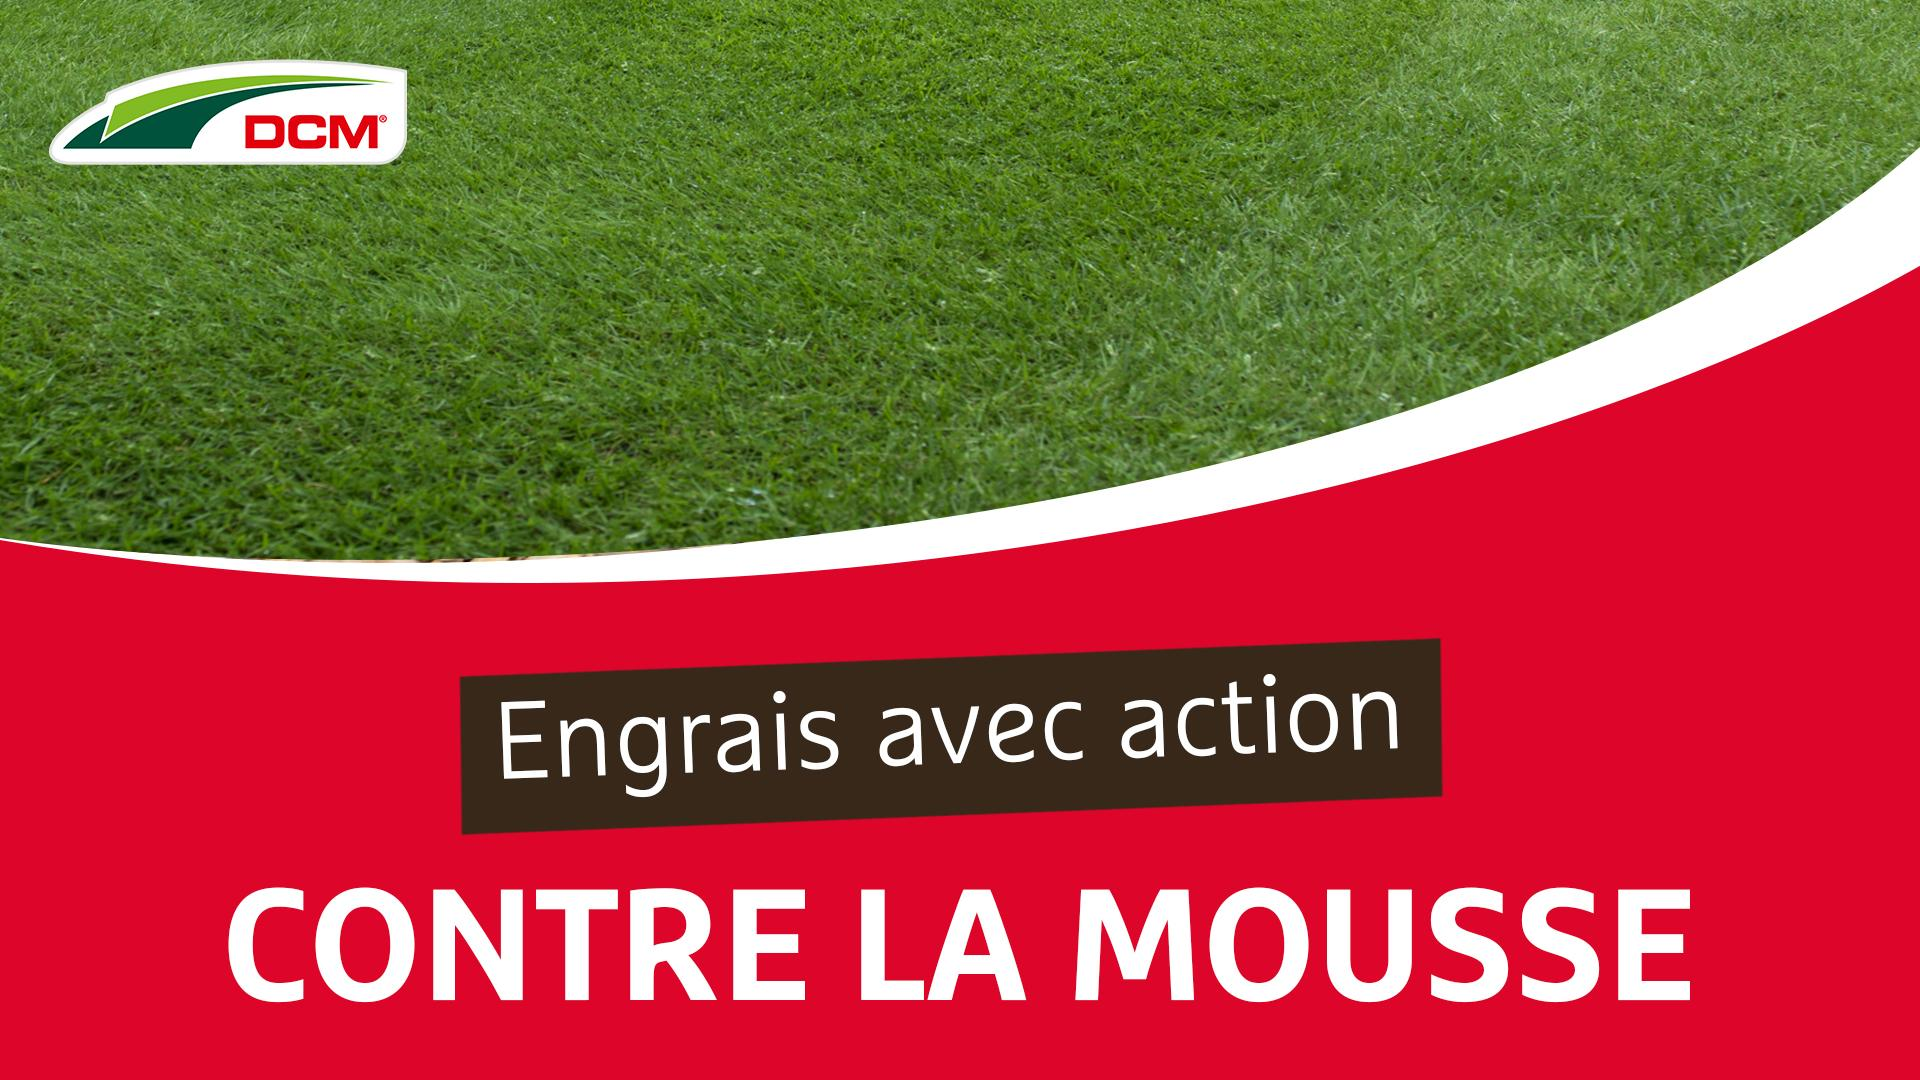 Engrais avec action contre la mousse - Gazon propre DCM